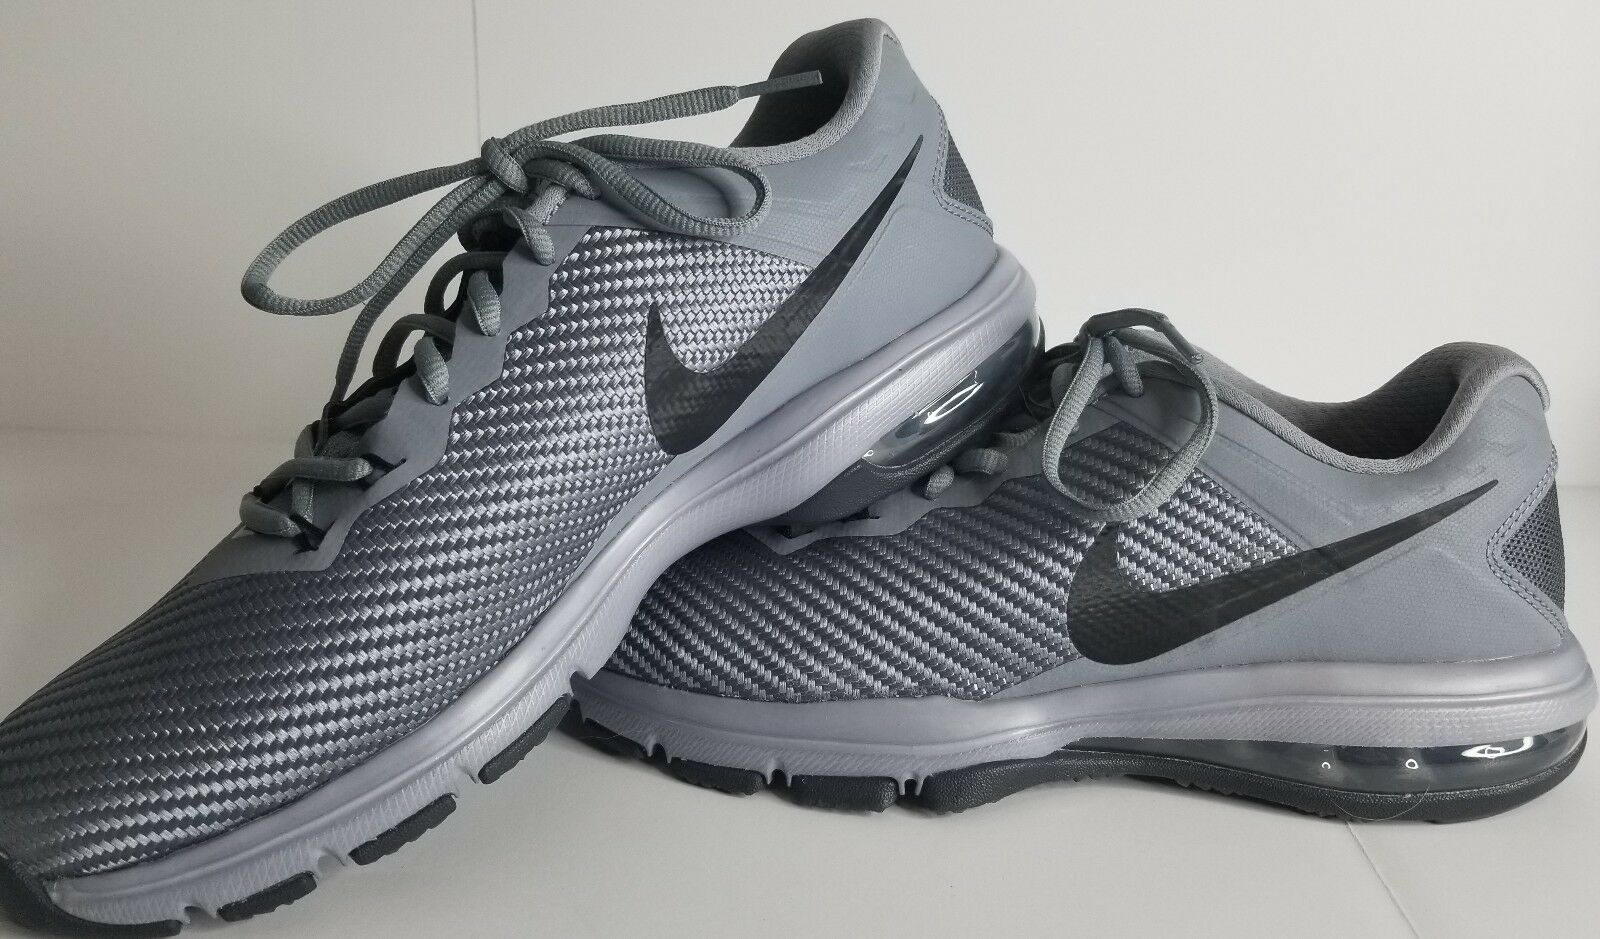 Nike Air Max Full Ride TR 1.5 Mens 869633 011 Cool Gray Training Shoes Size 8.5